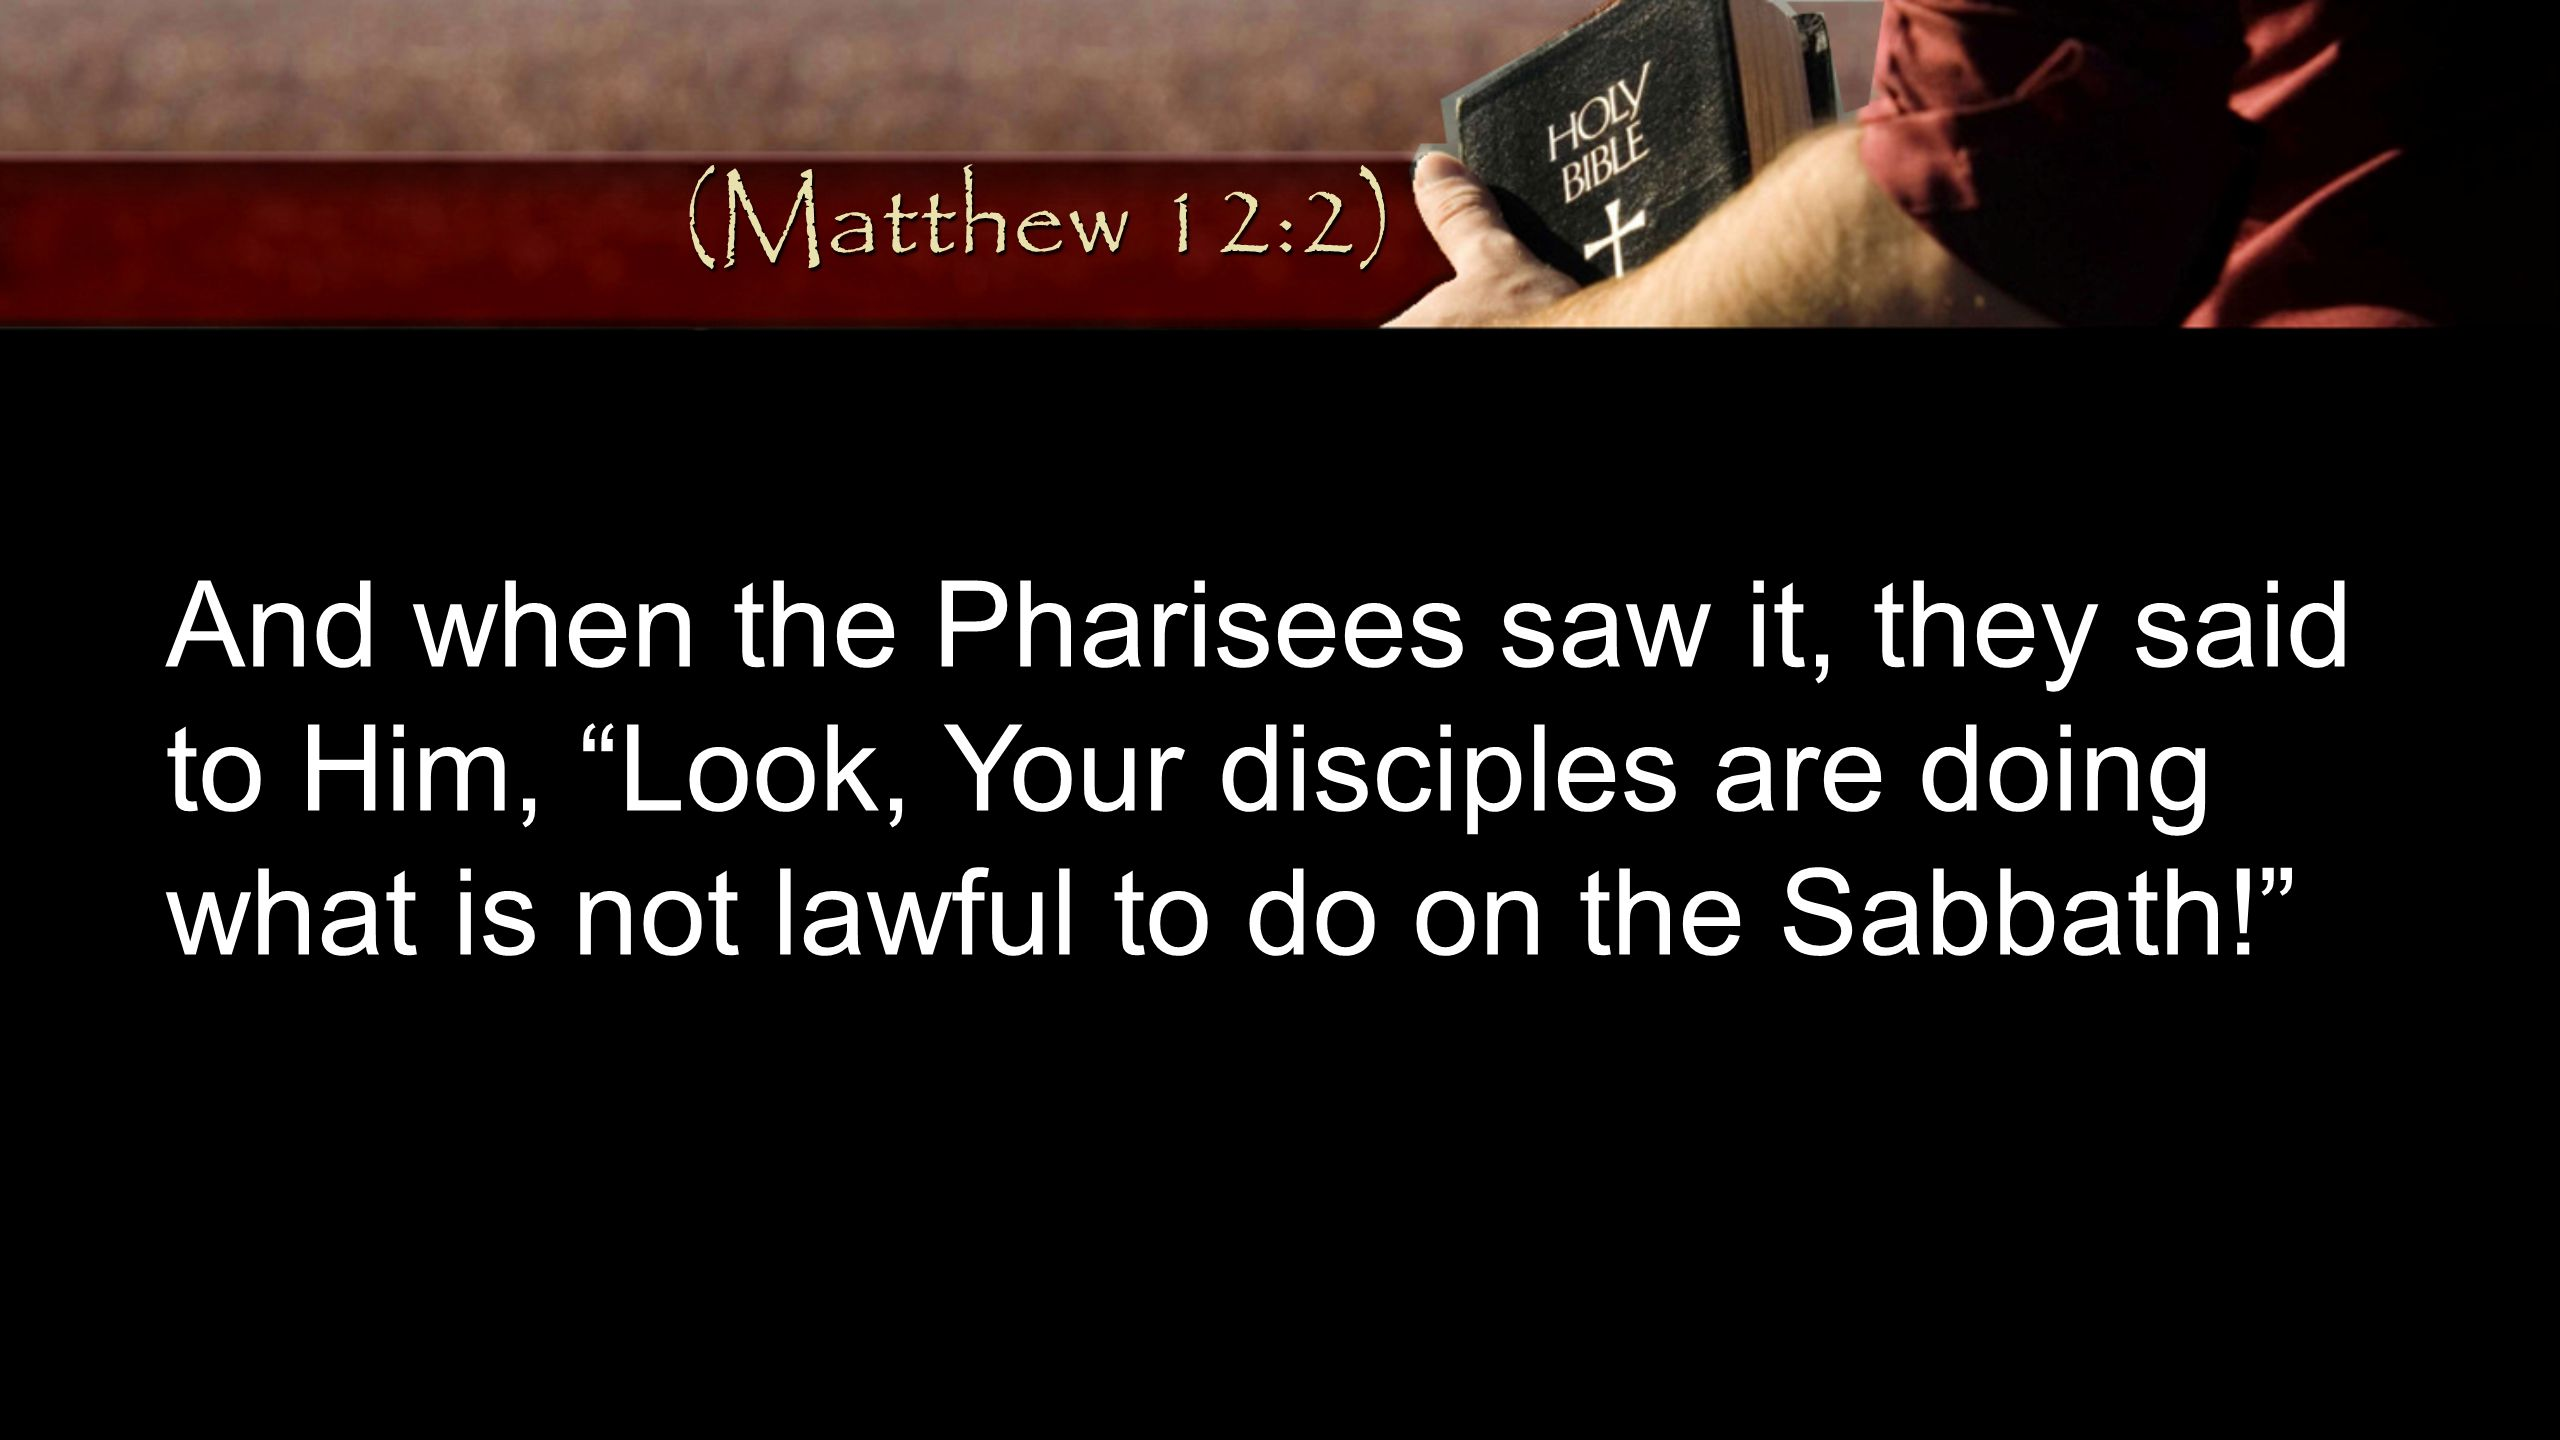 (Matthew 12:2) And when the Pharisees saw it, they said to Him, Look, Your disciples are doing what is not lawful to do on the Sabbath!